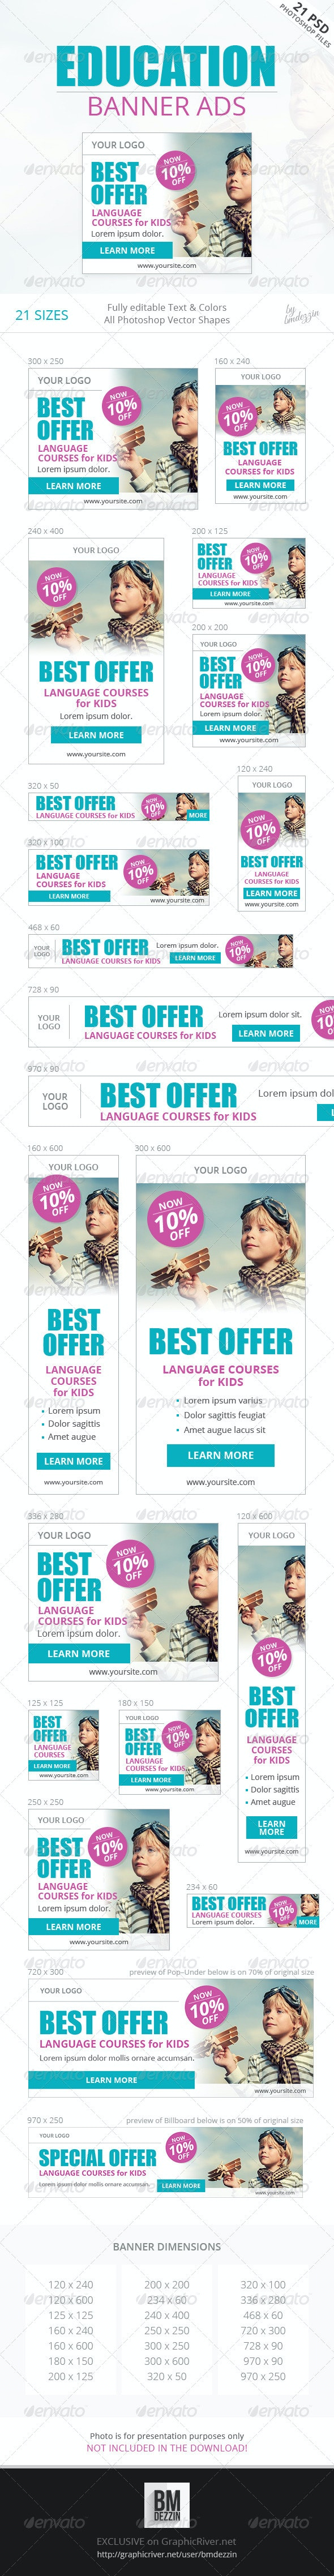 Education Banner Ads - Banners & Ads Web Elements